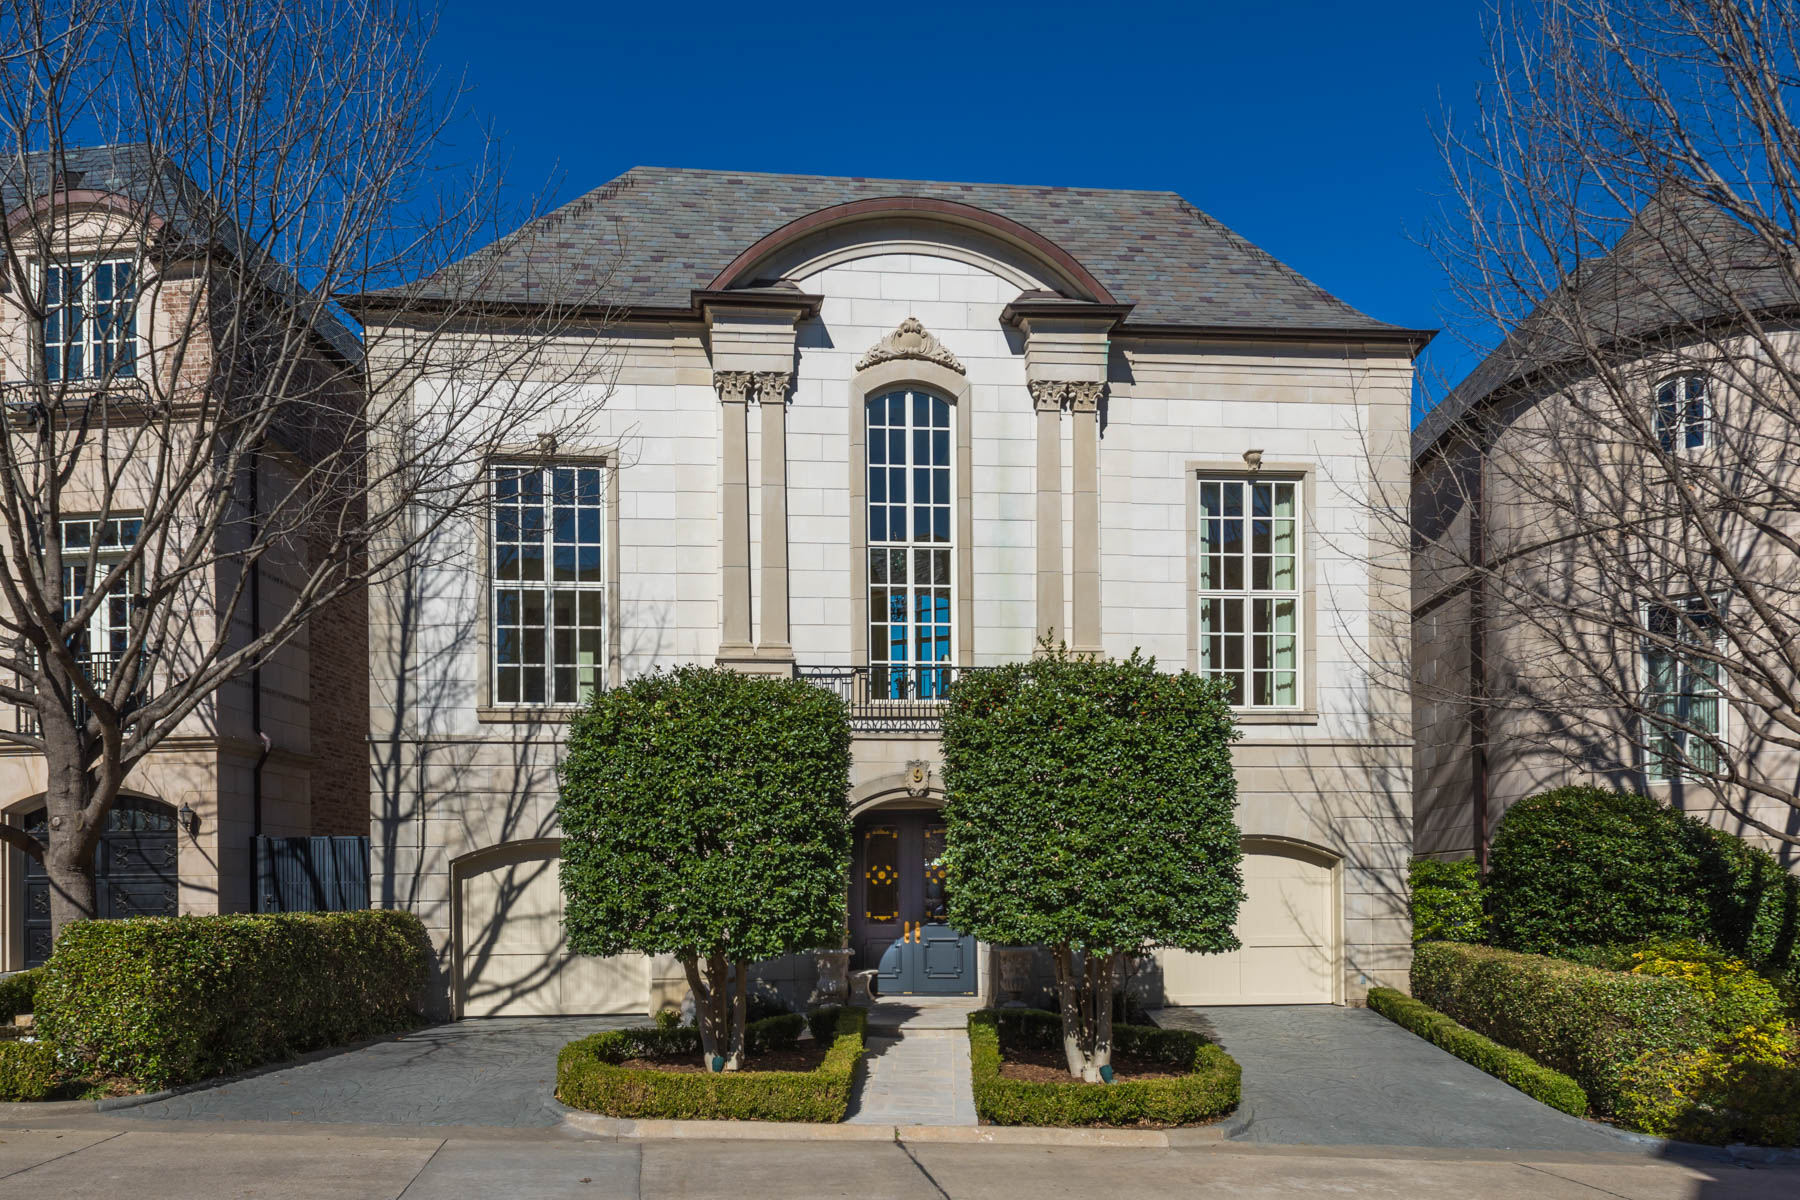 Casa Unifamiliar por un Venta en Curated French Provincial Limestone 3901 Turtle Creek Blvd 9 Dallas, Texas, 75219 Estados Unidos